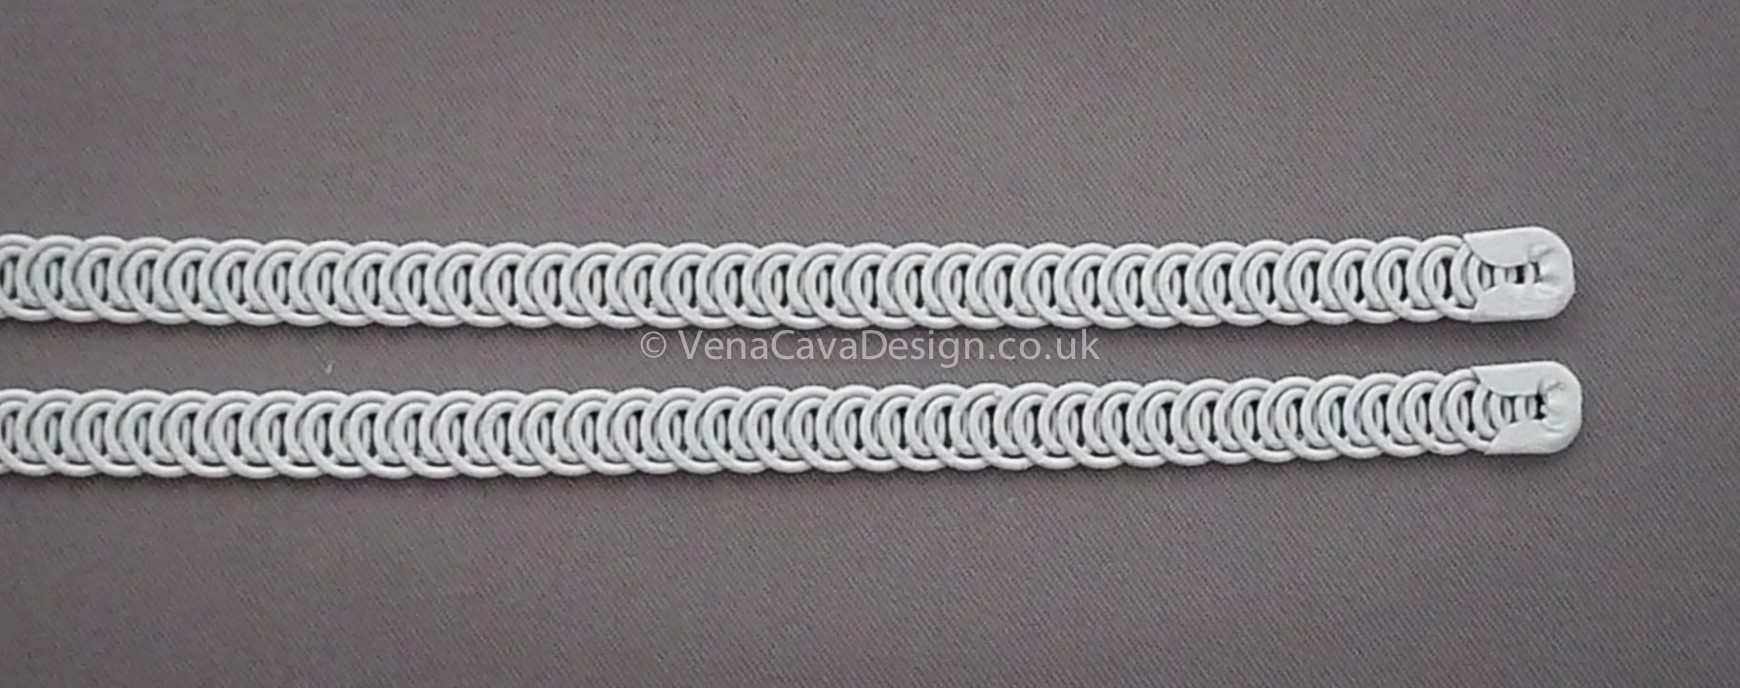 White Enamelled Finished Spiral Wires 6mm wide